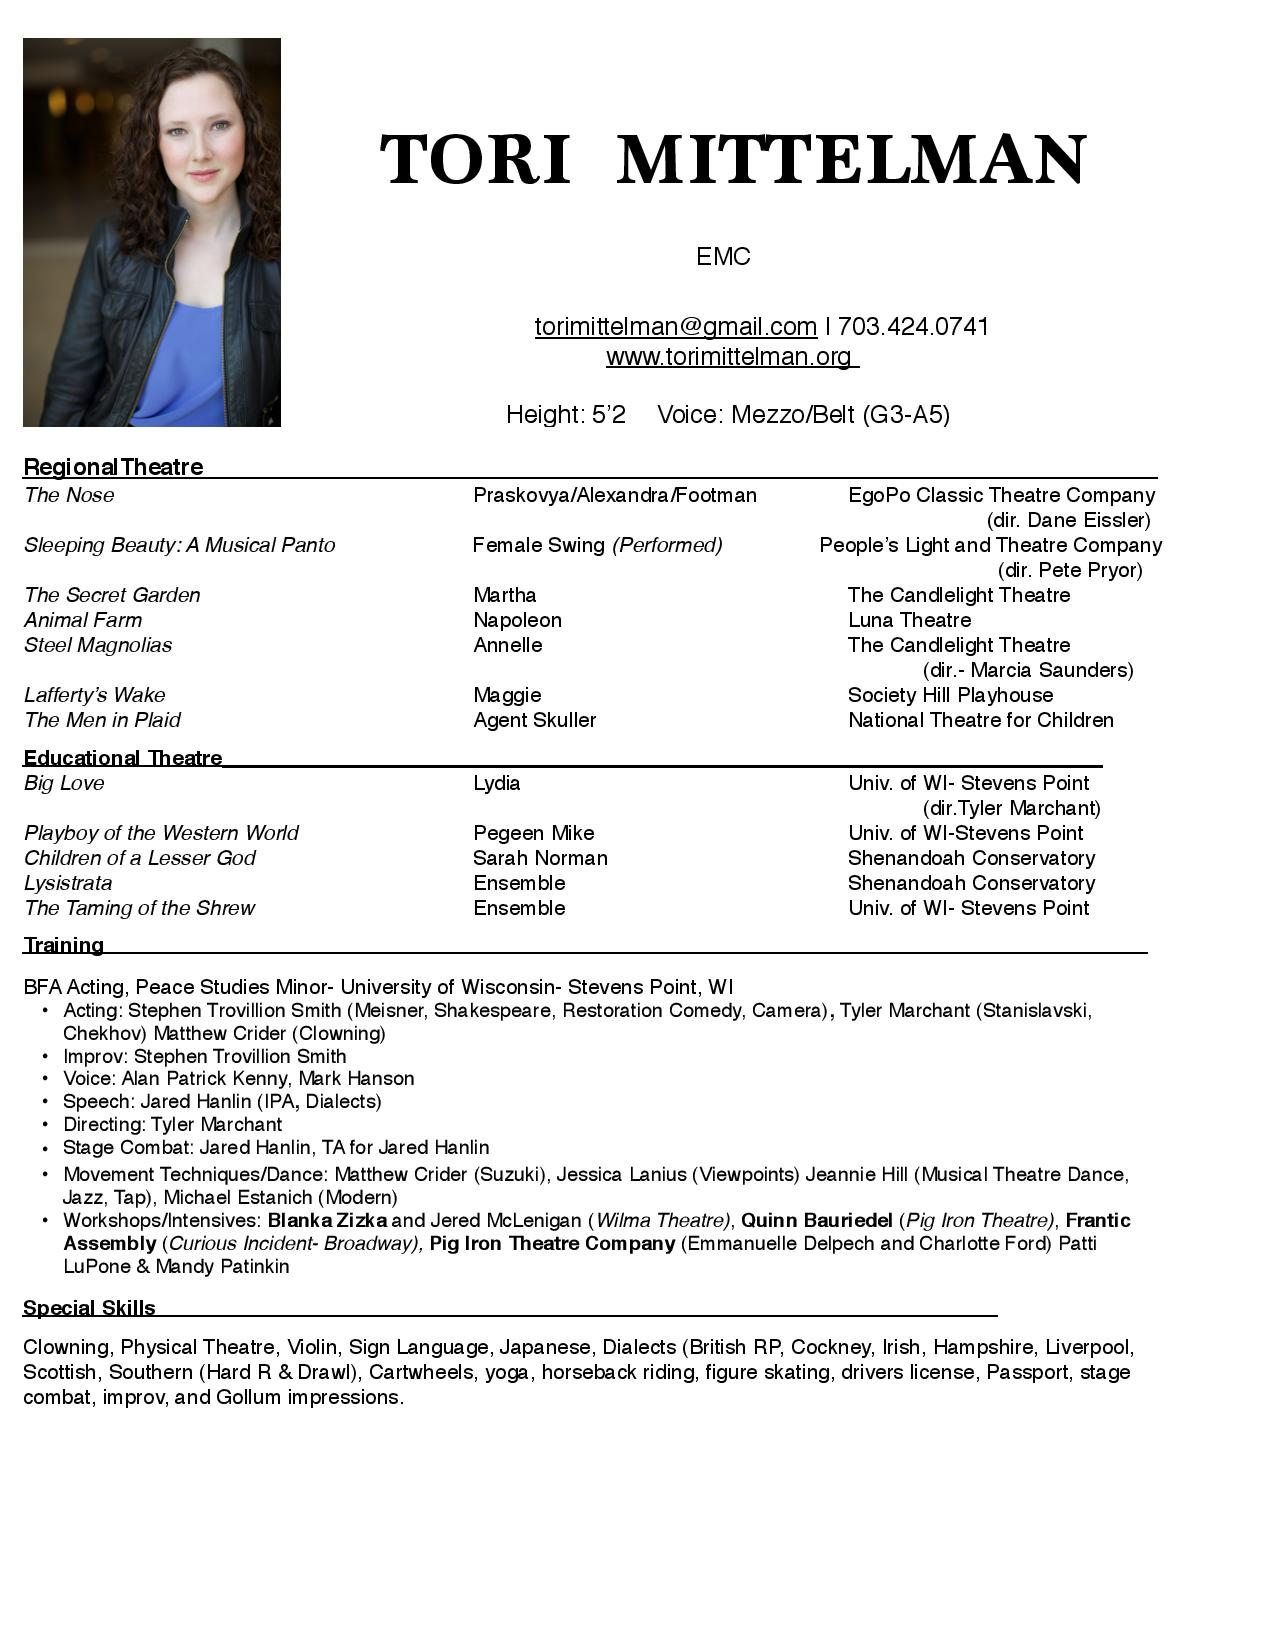 Artistic Resume- March  17-page-001.jpg